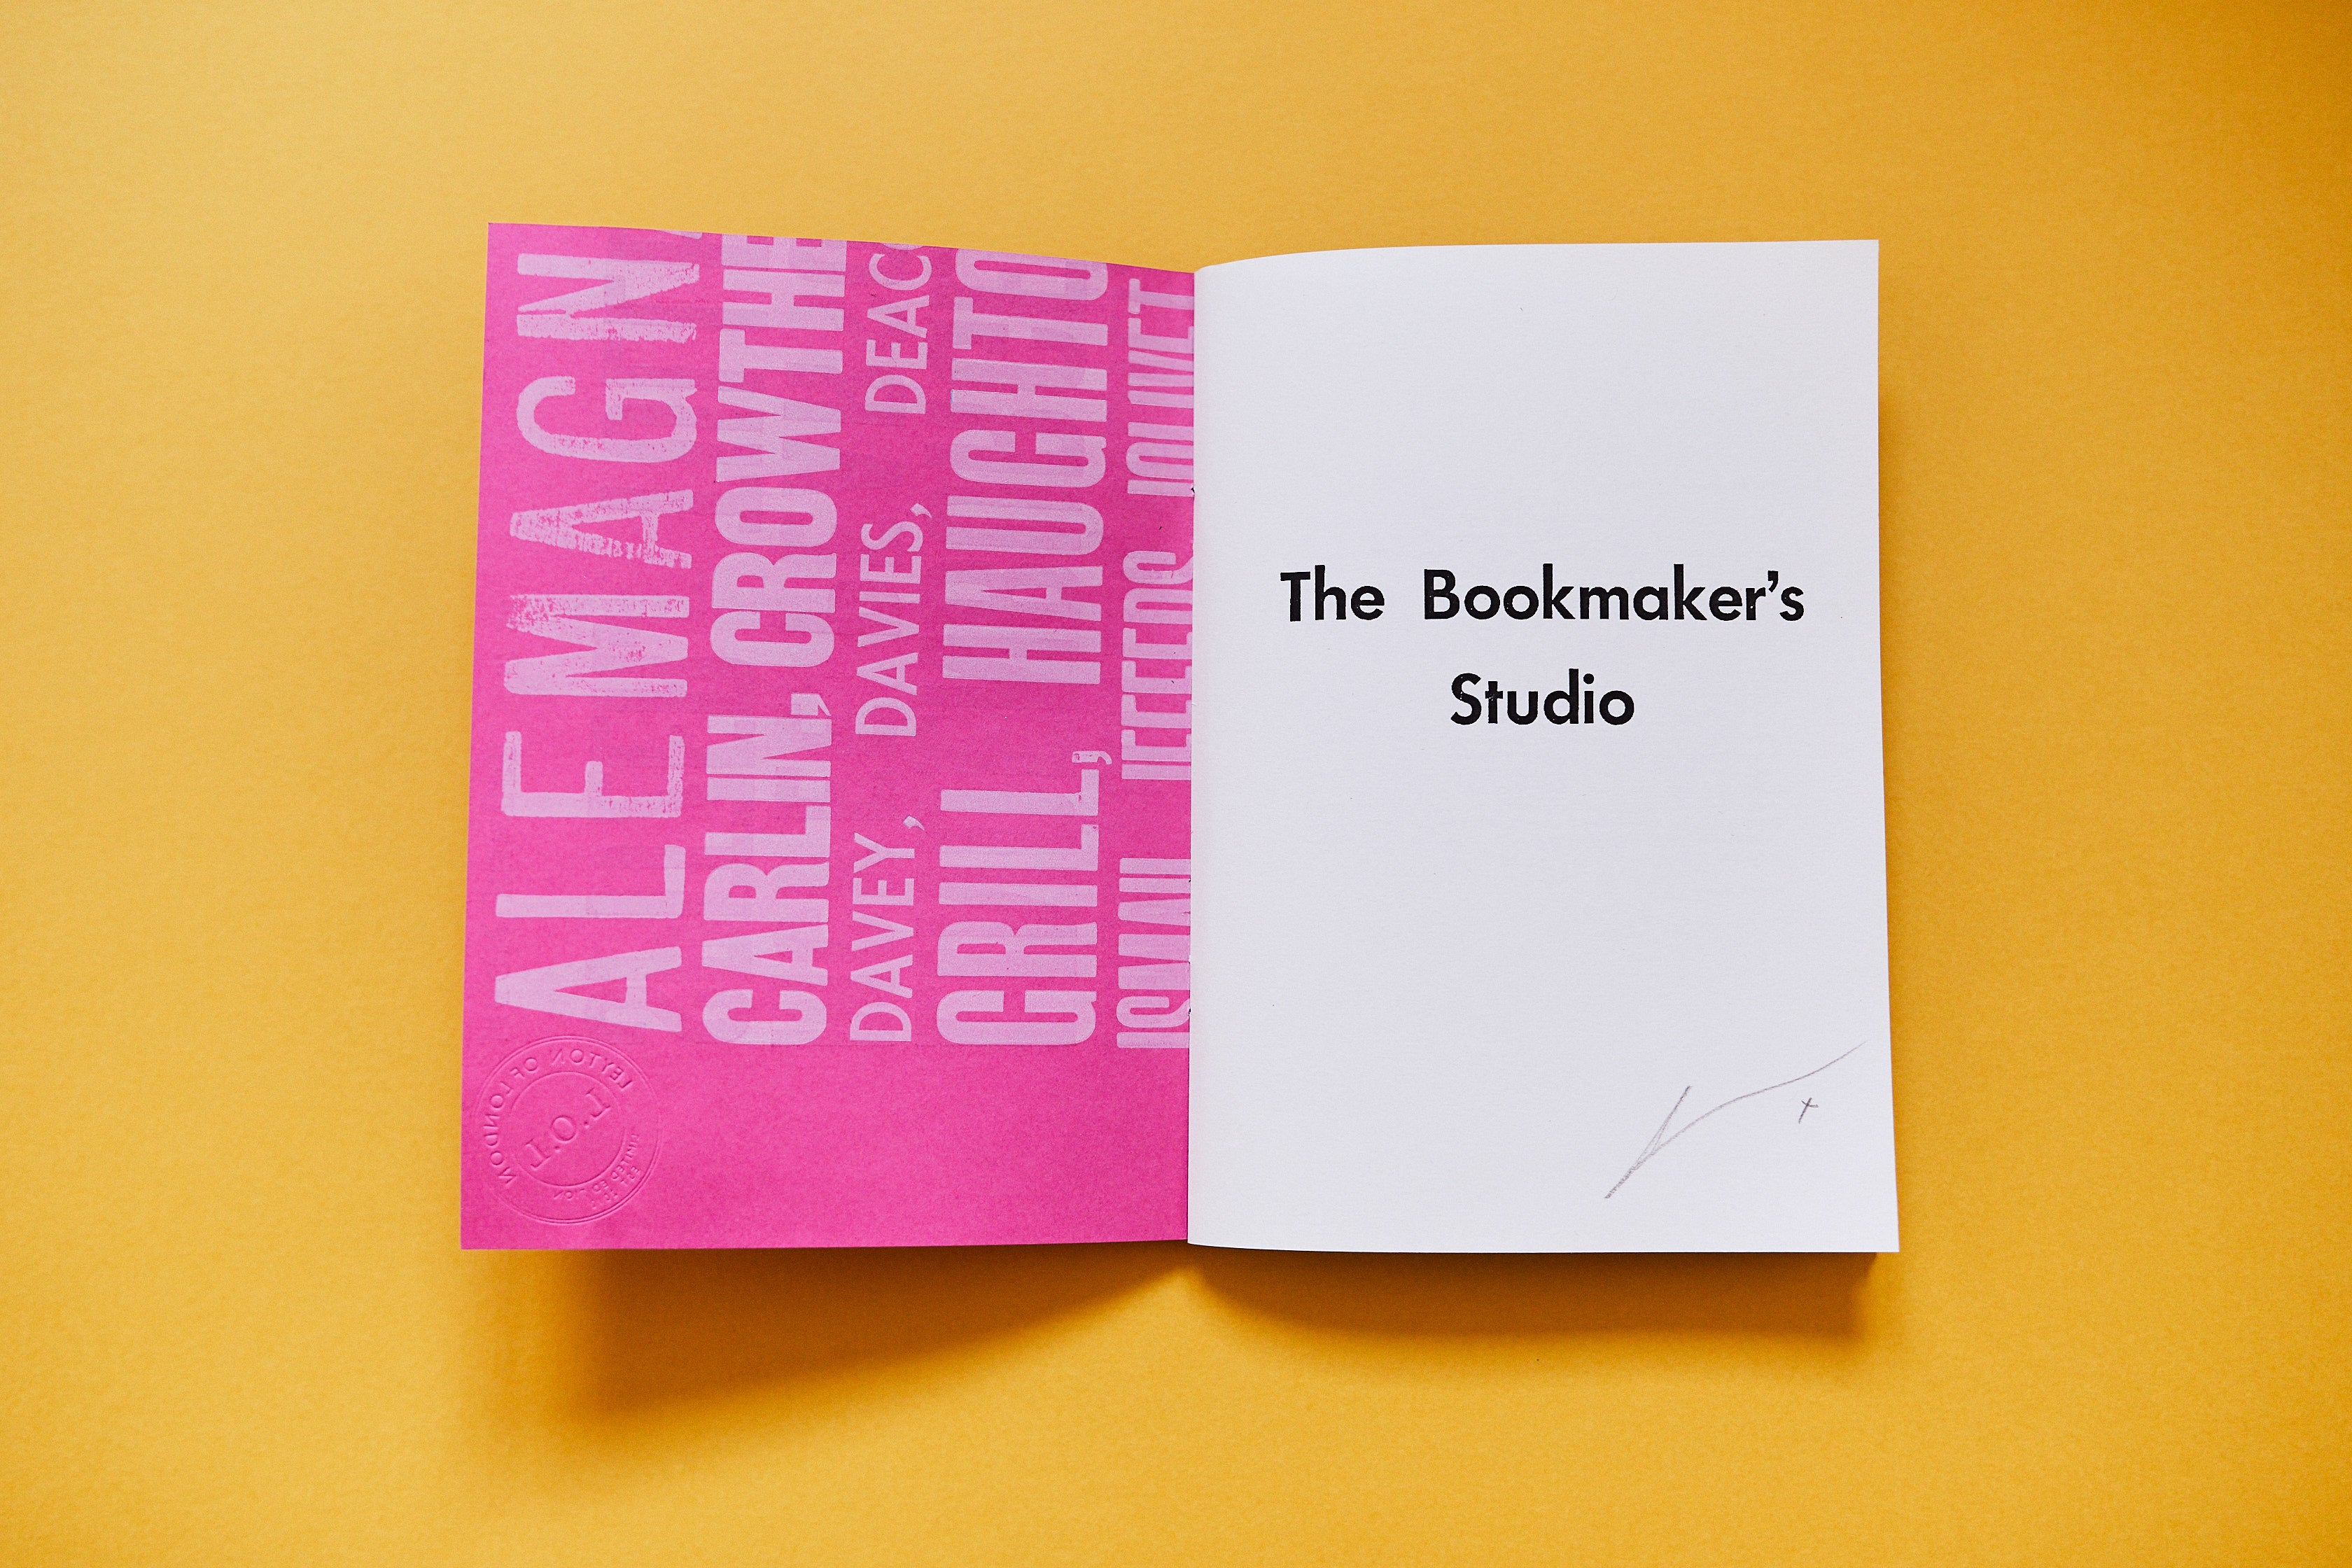 The Bookmaker's Studio - Abridged A5 Edition - Signed